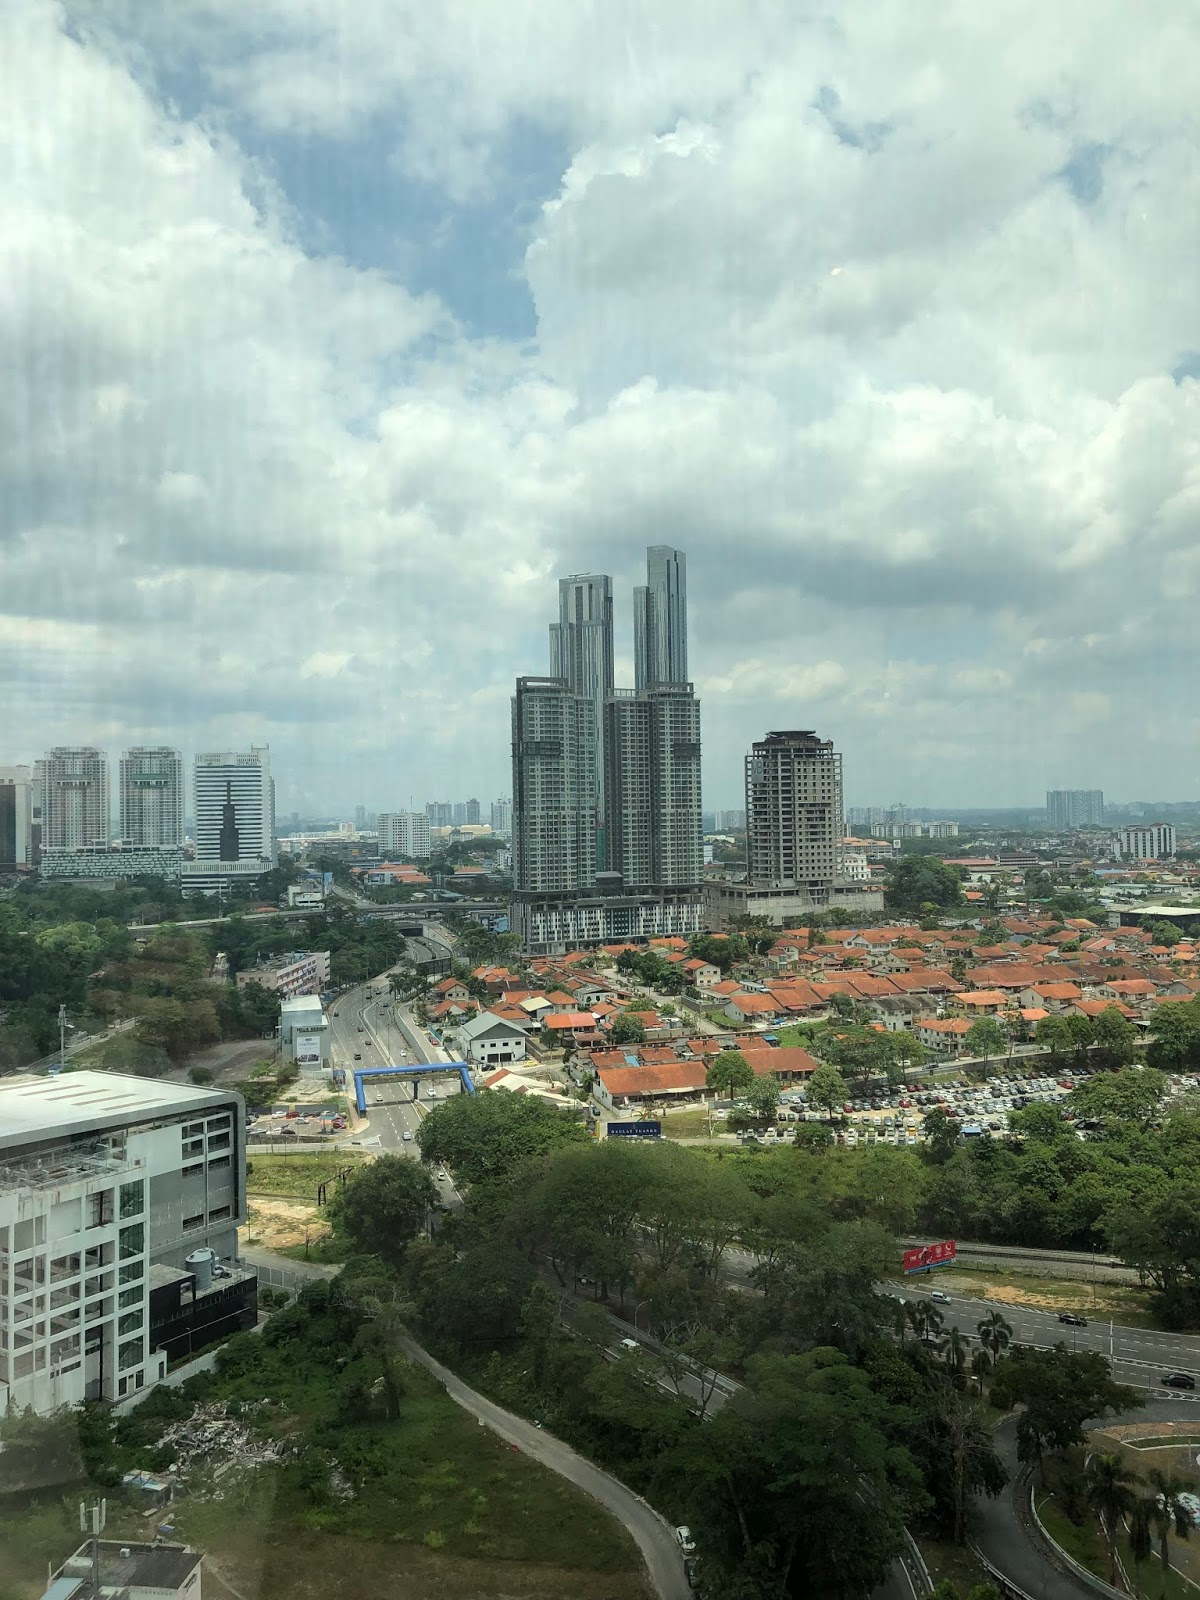 Malaysia - 2 Day 1 Night Johor Bahru Weekend Itinerary | OUR